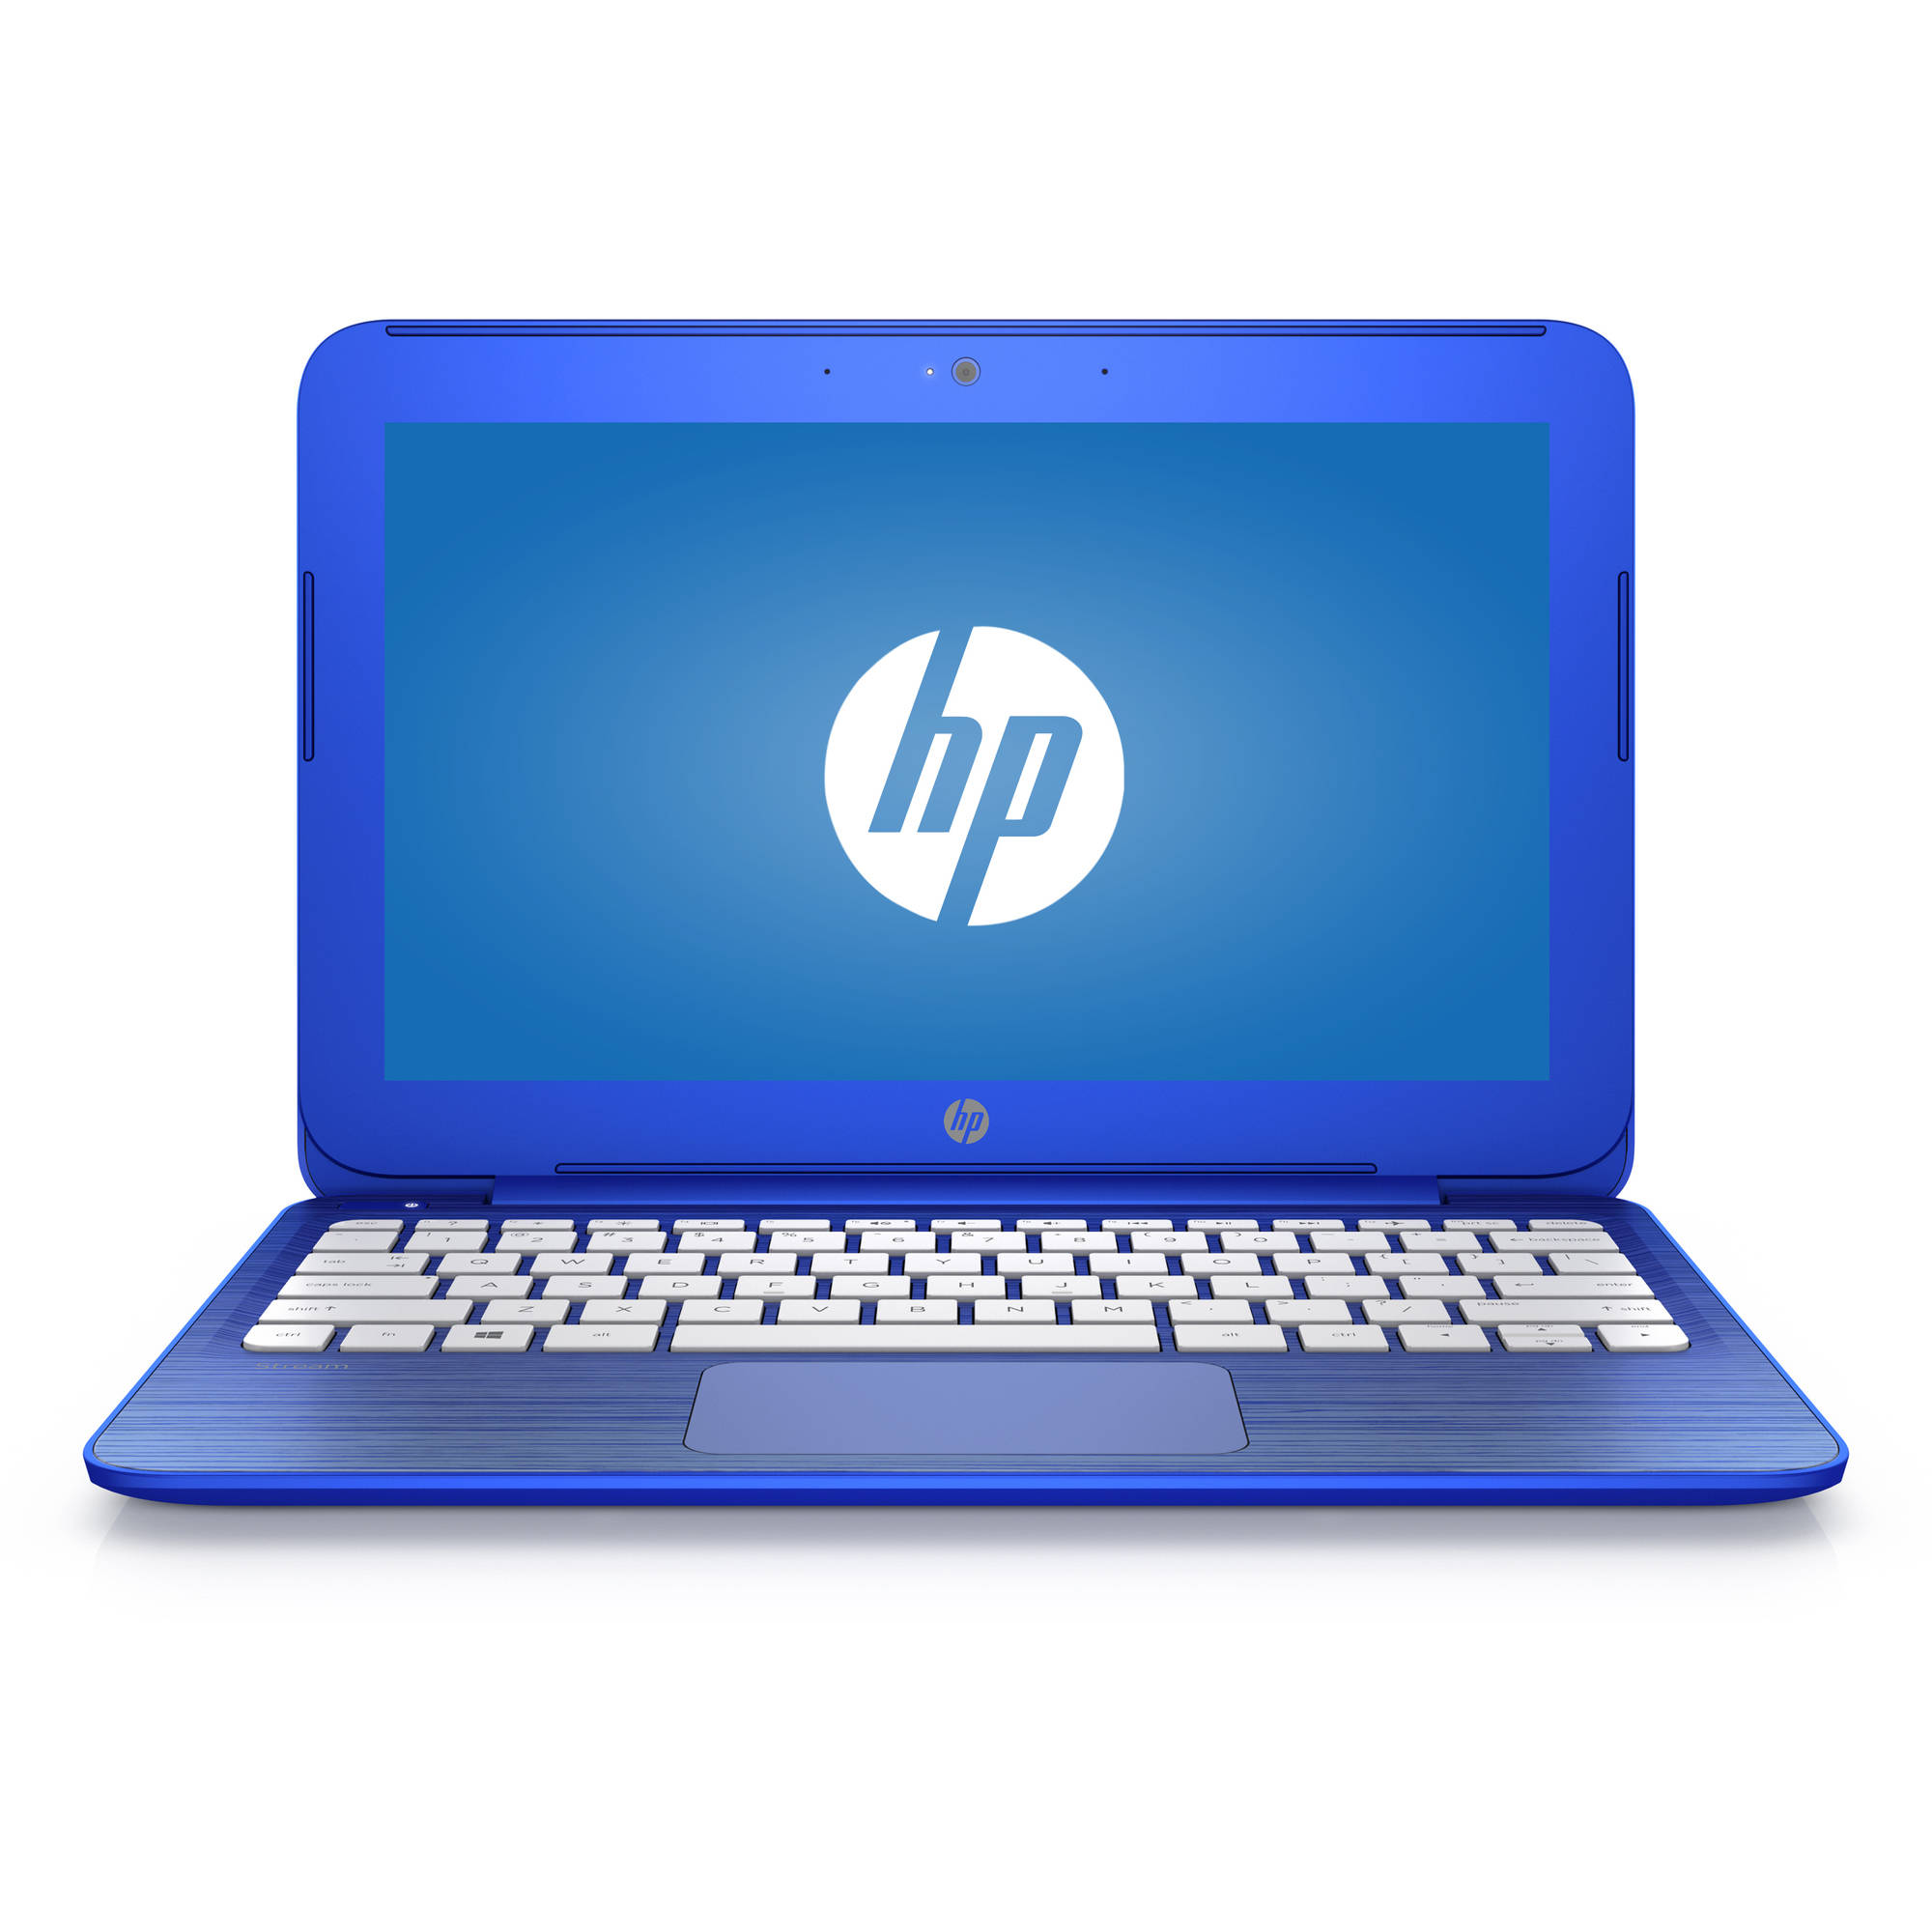 "Refurbished HP Cobalt Blue 11"" Stream Laptop PC with Intel Celeron N3050 Dual-Core Processor, 2GB Memory, 32GB Hard Drive and Windows 10 Home"